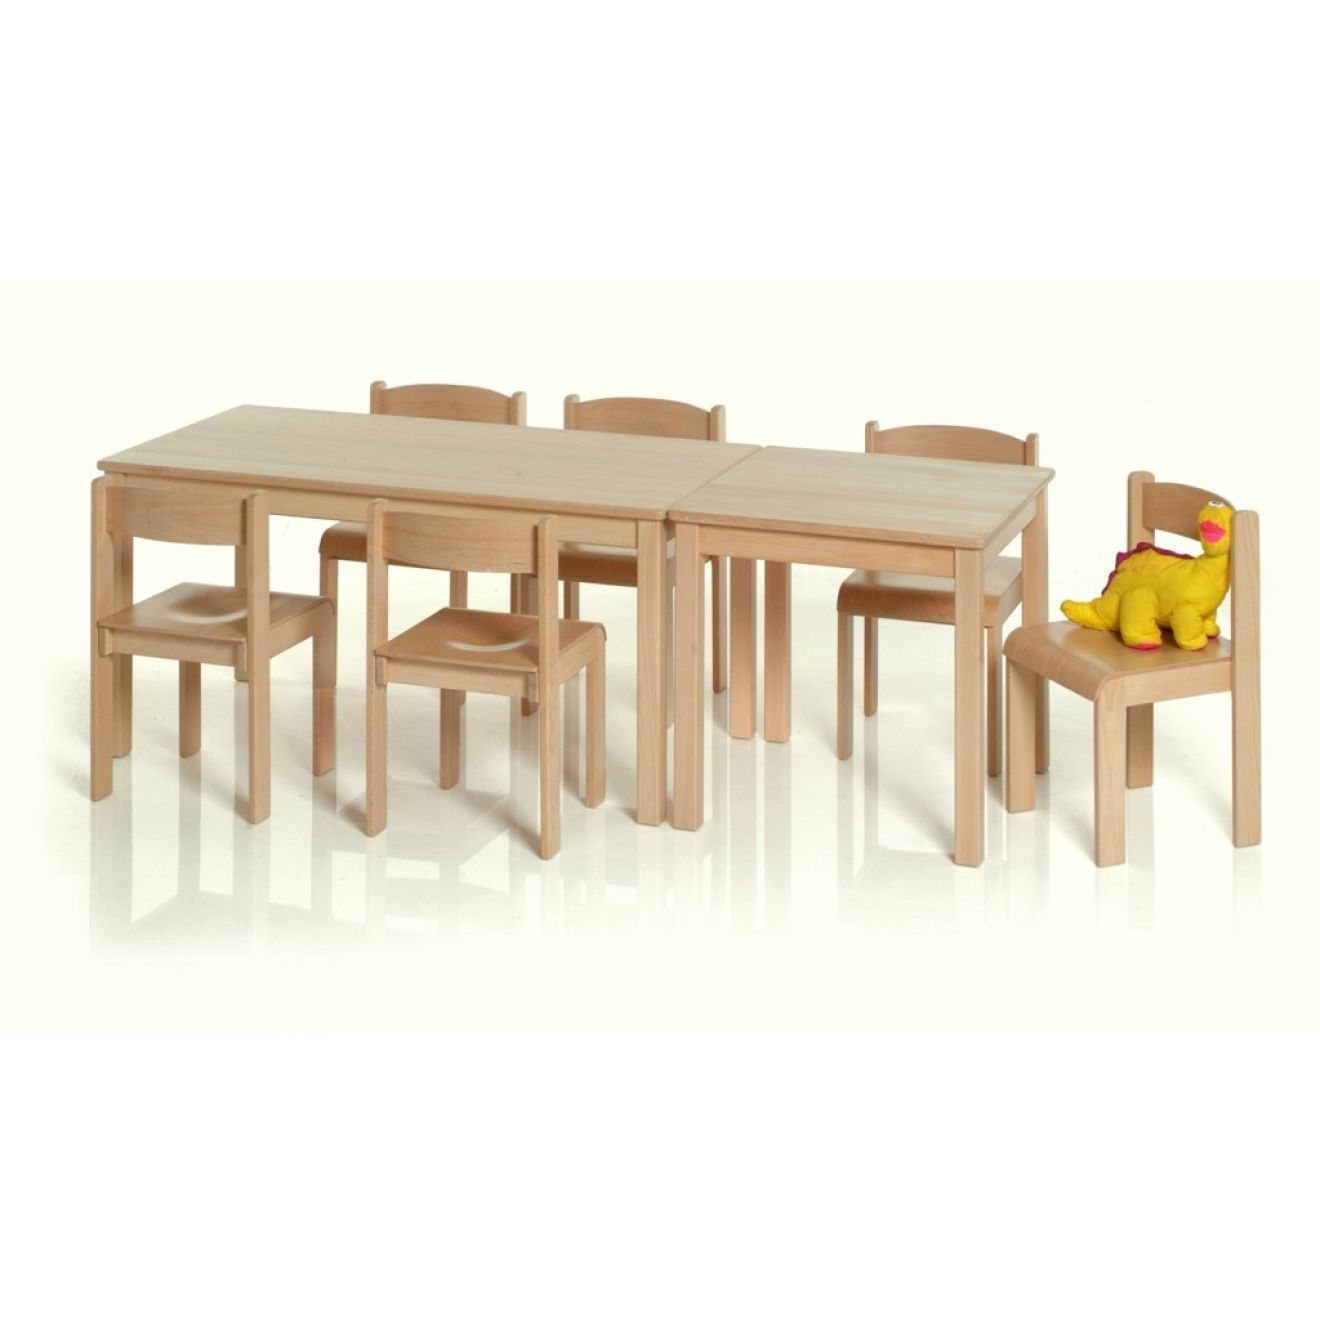 1 kinderstuhl holz stapelstuhl kindergartenstuhl ohne tisch u deko wertprodukte. Black Bedroom Furniture Sets. Home Design Ideas